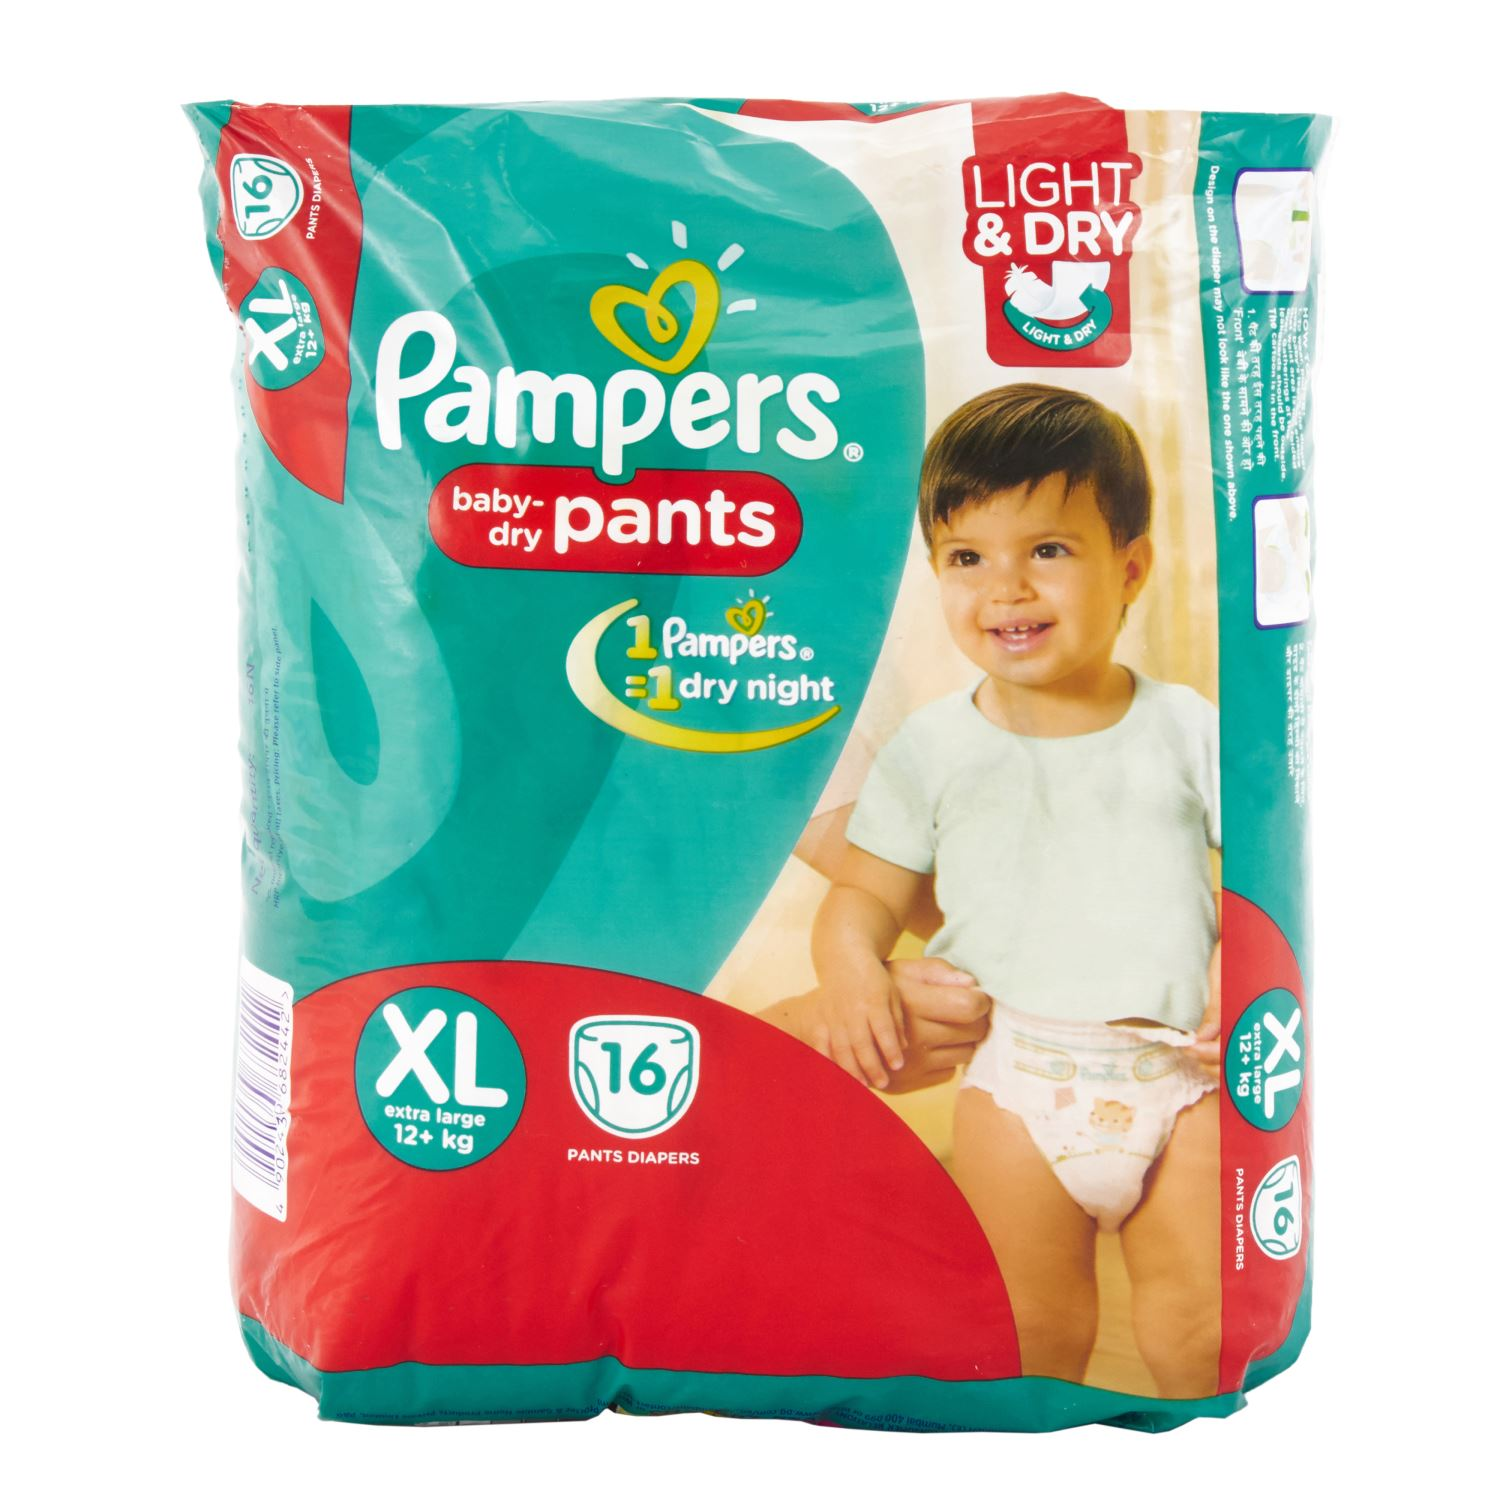 Pampers Pant Style Diapers XL - 16 Nos